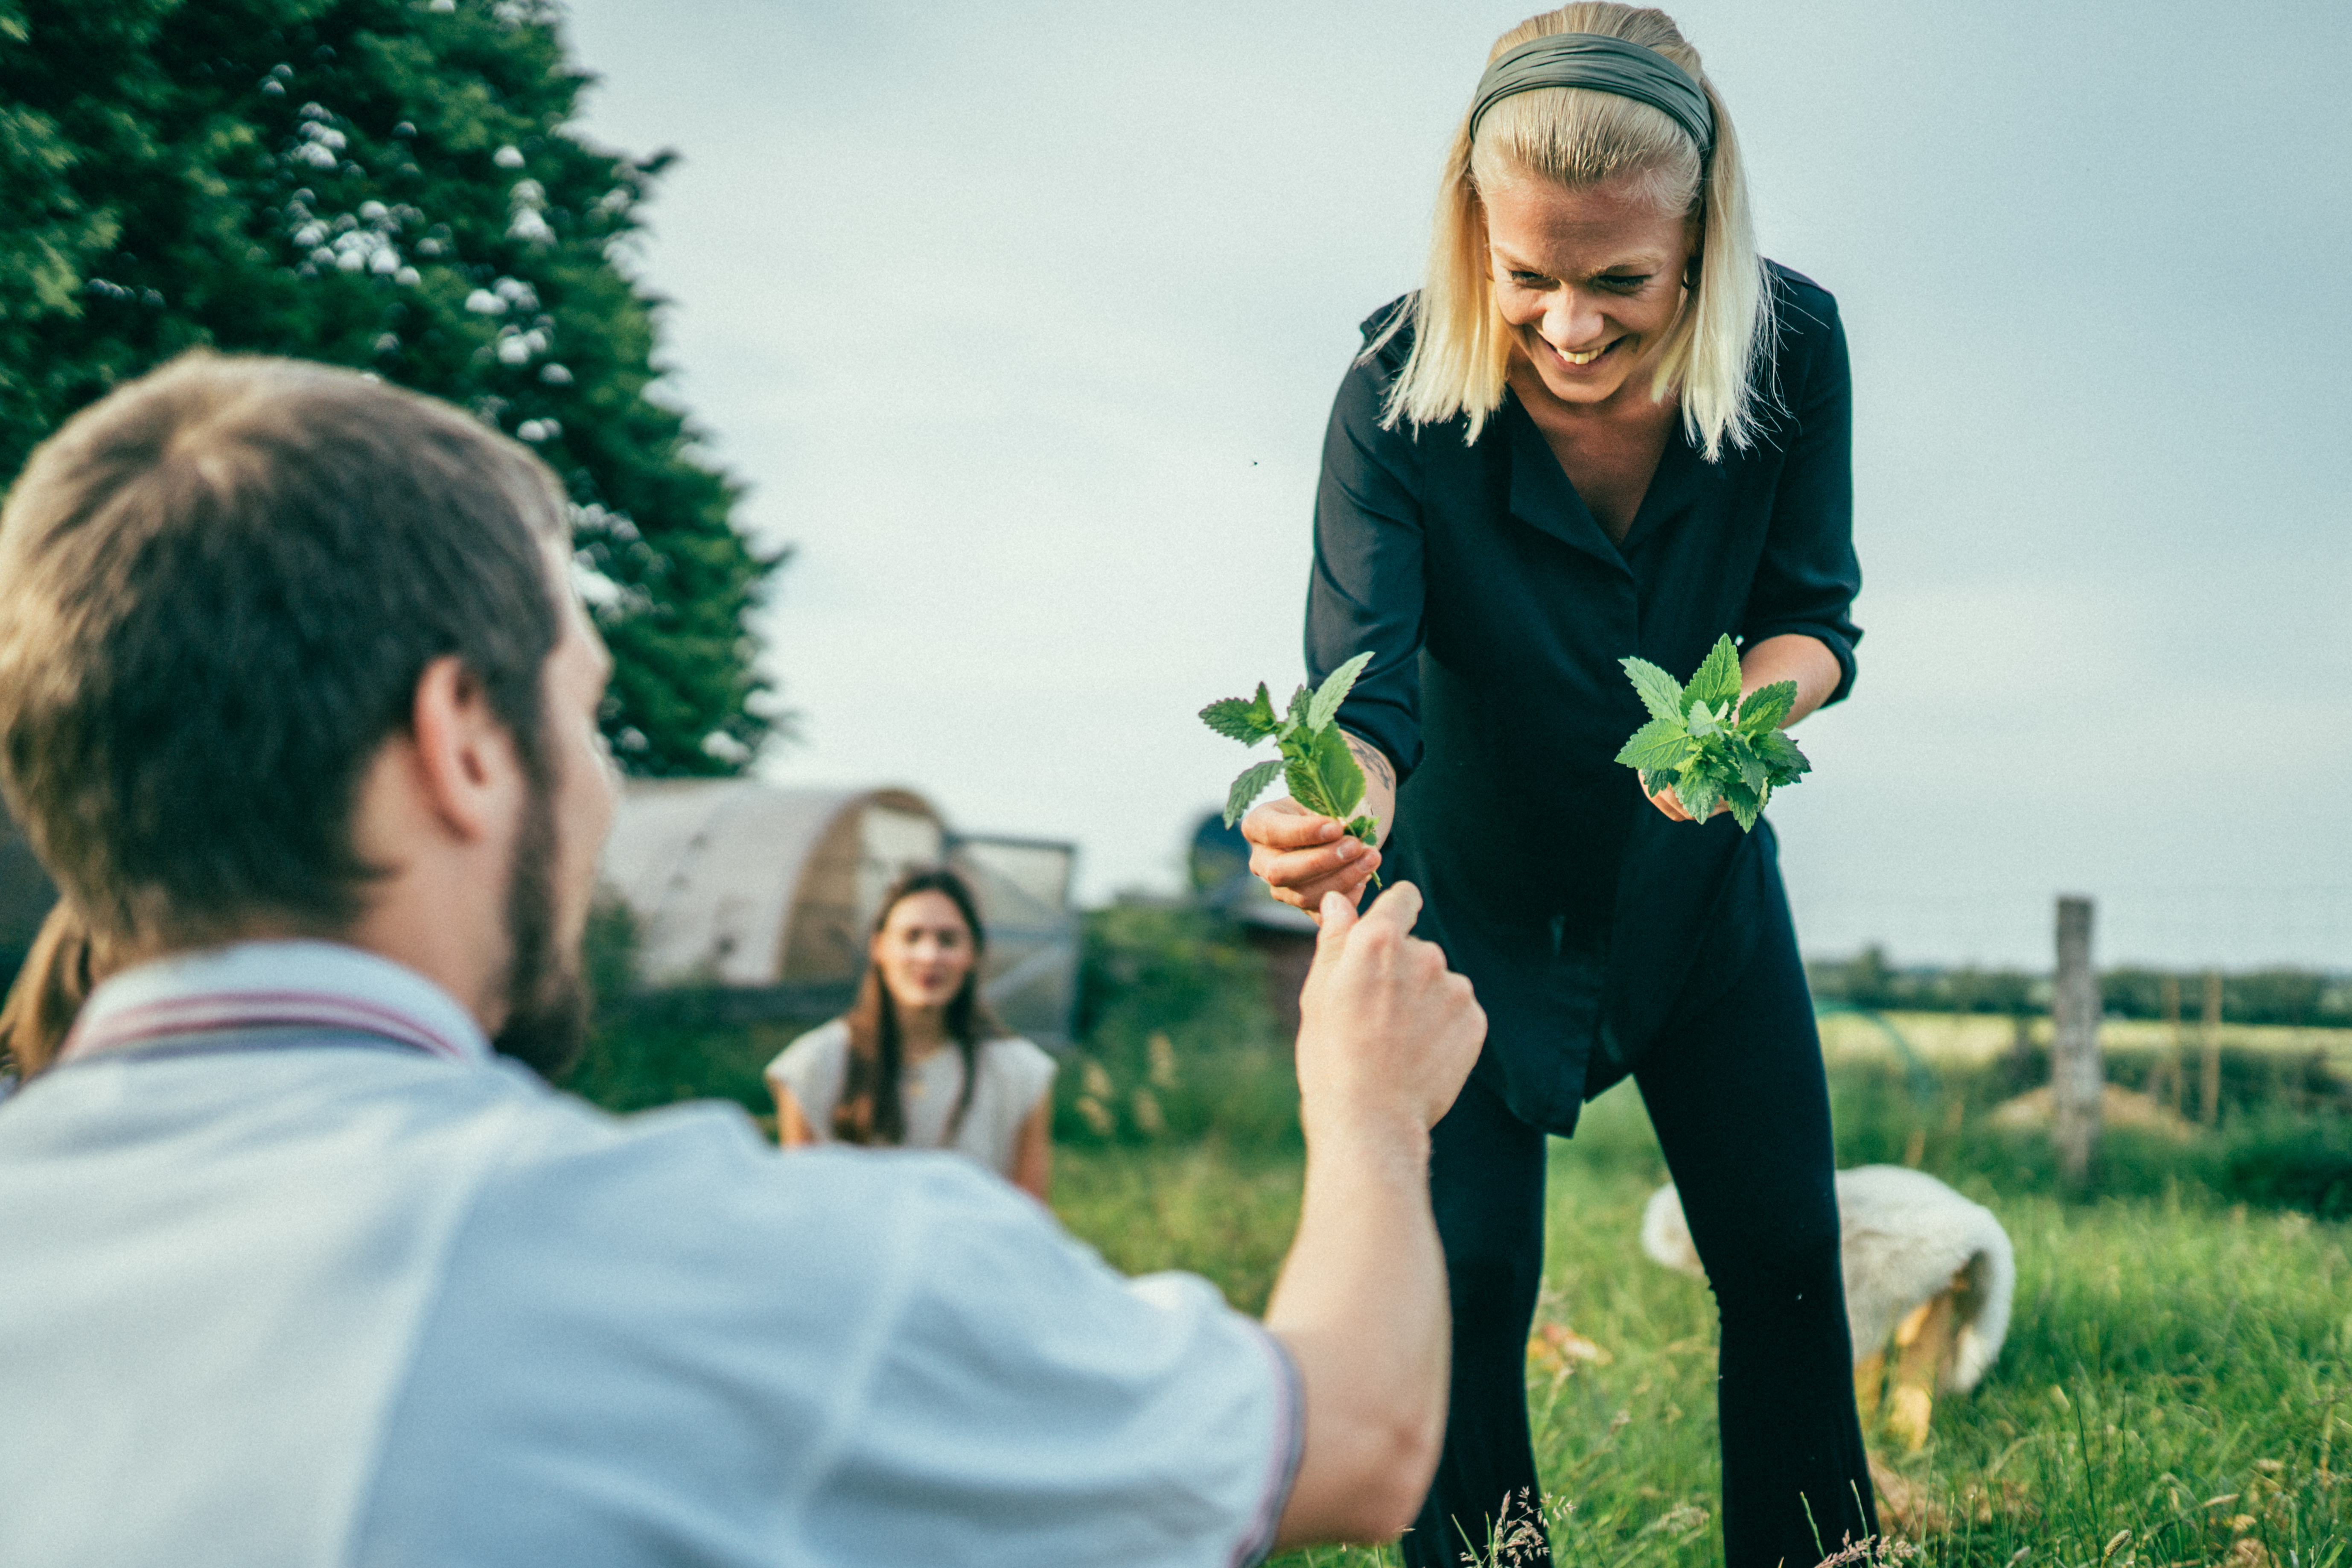 Lisa is handing a small vase with a plant in ti to Hanno. Both are outside in the sunny garden during an event. There's people in the background.